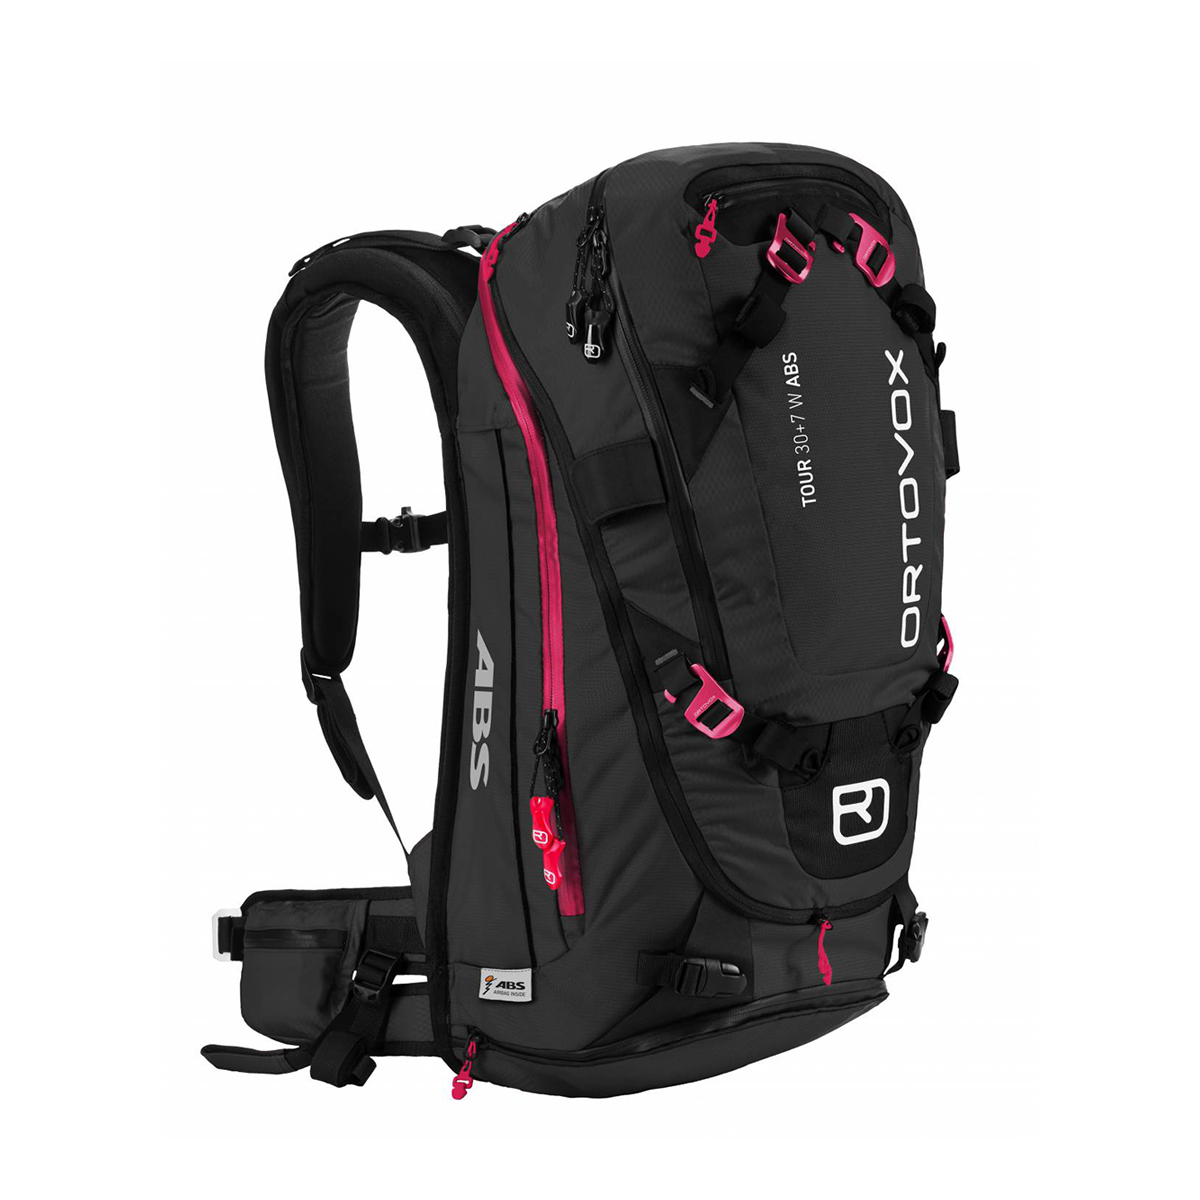 Ortovox Tour 30 7 Womens Abs Avalanche Airbag Pack